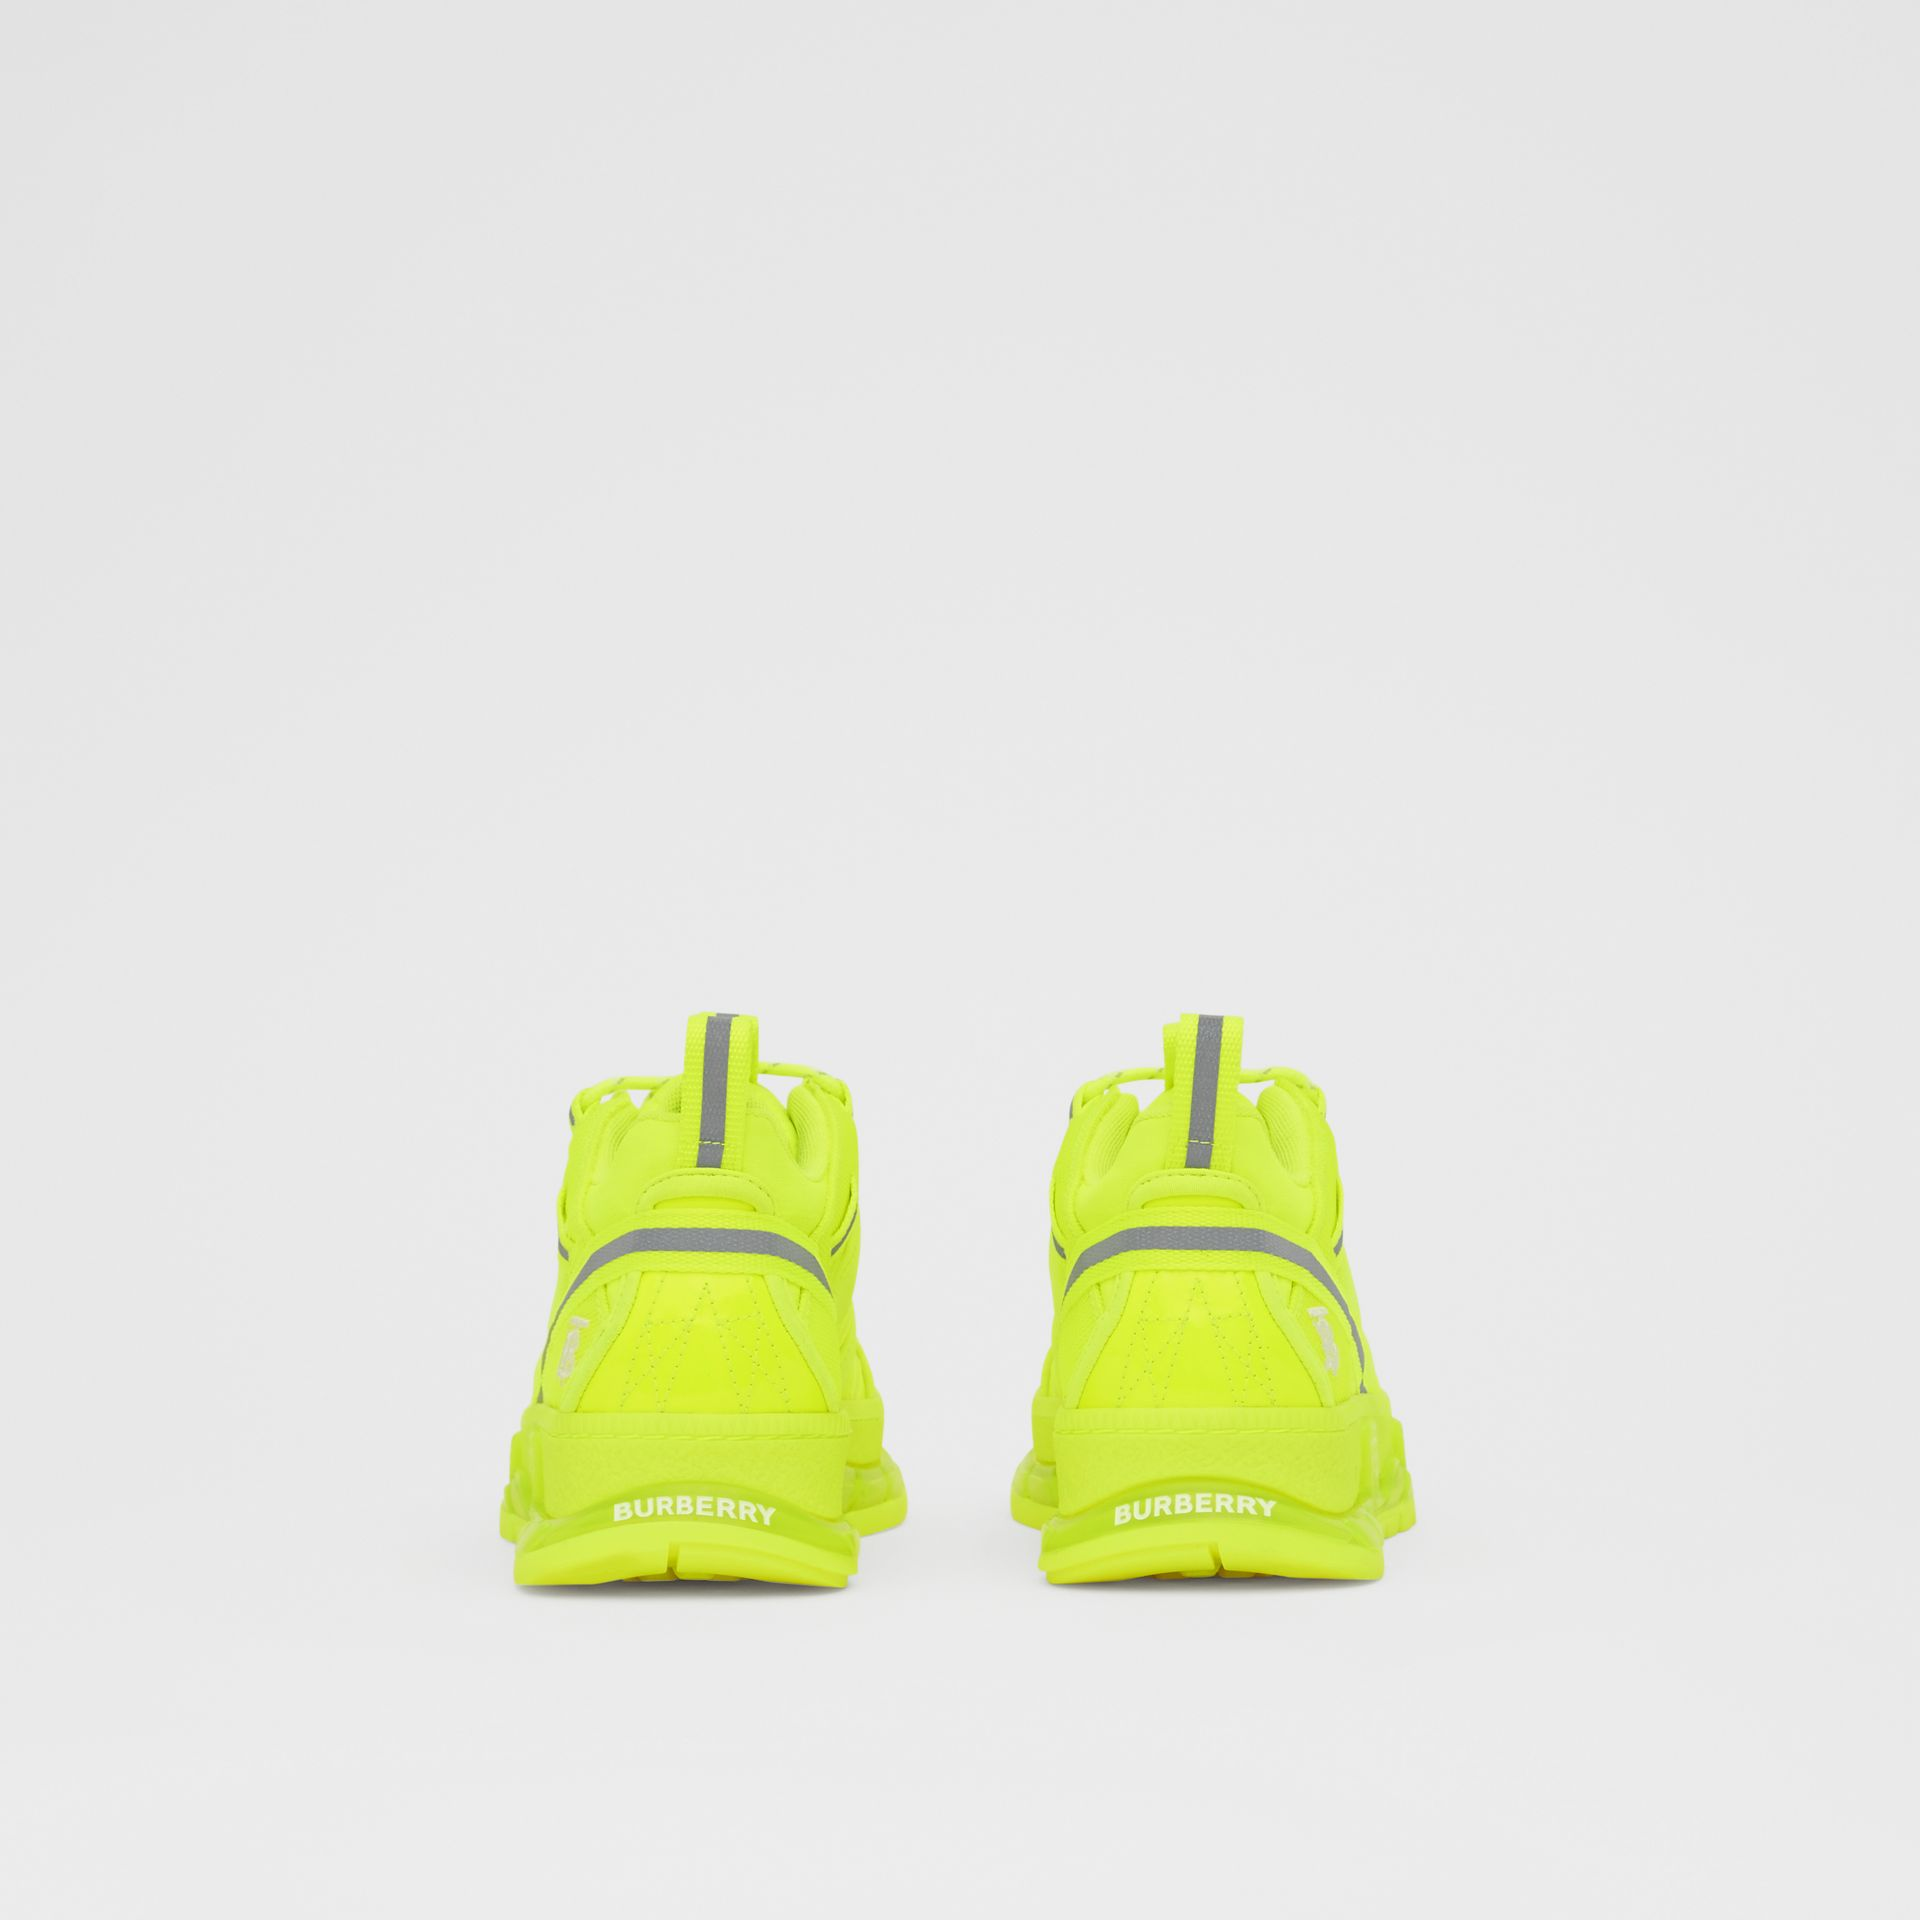 Nylon and Cotton Union Sneakers in Fluorescent Yellow - Women | Burberry United Kingdom - gallery image 4